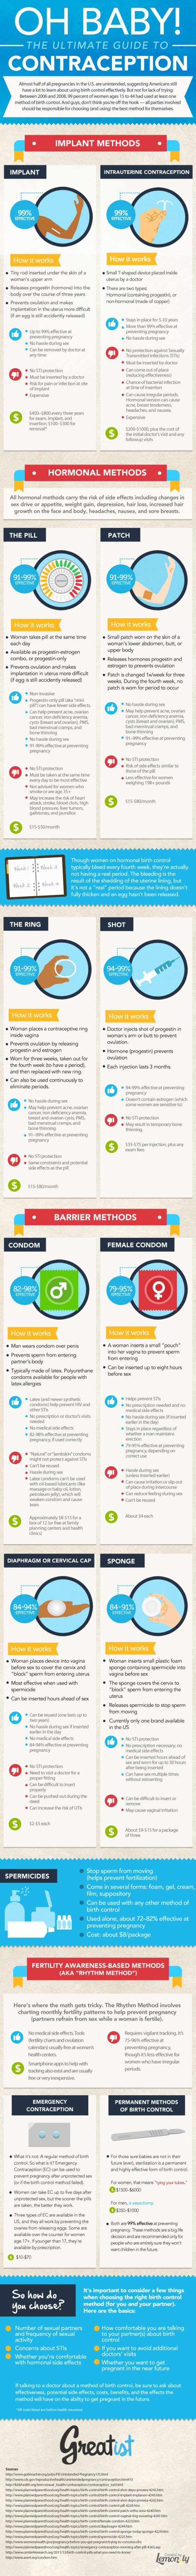 The Ultimate Guide to Contraception